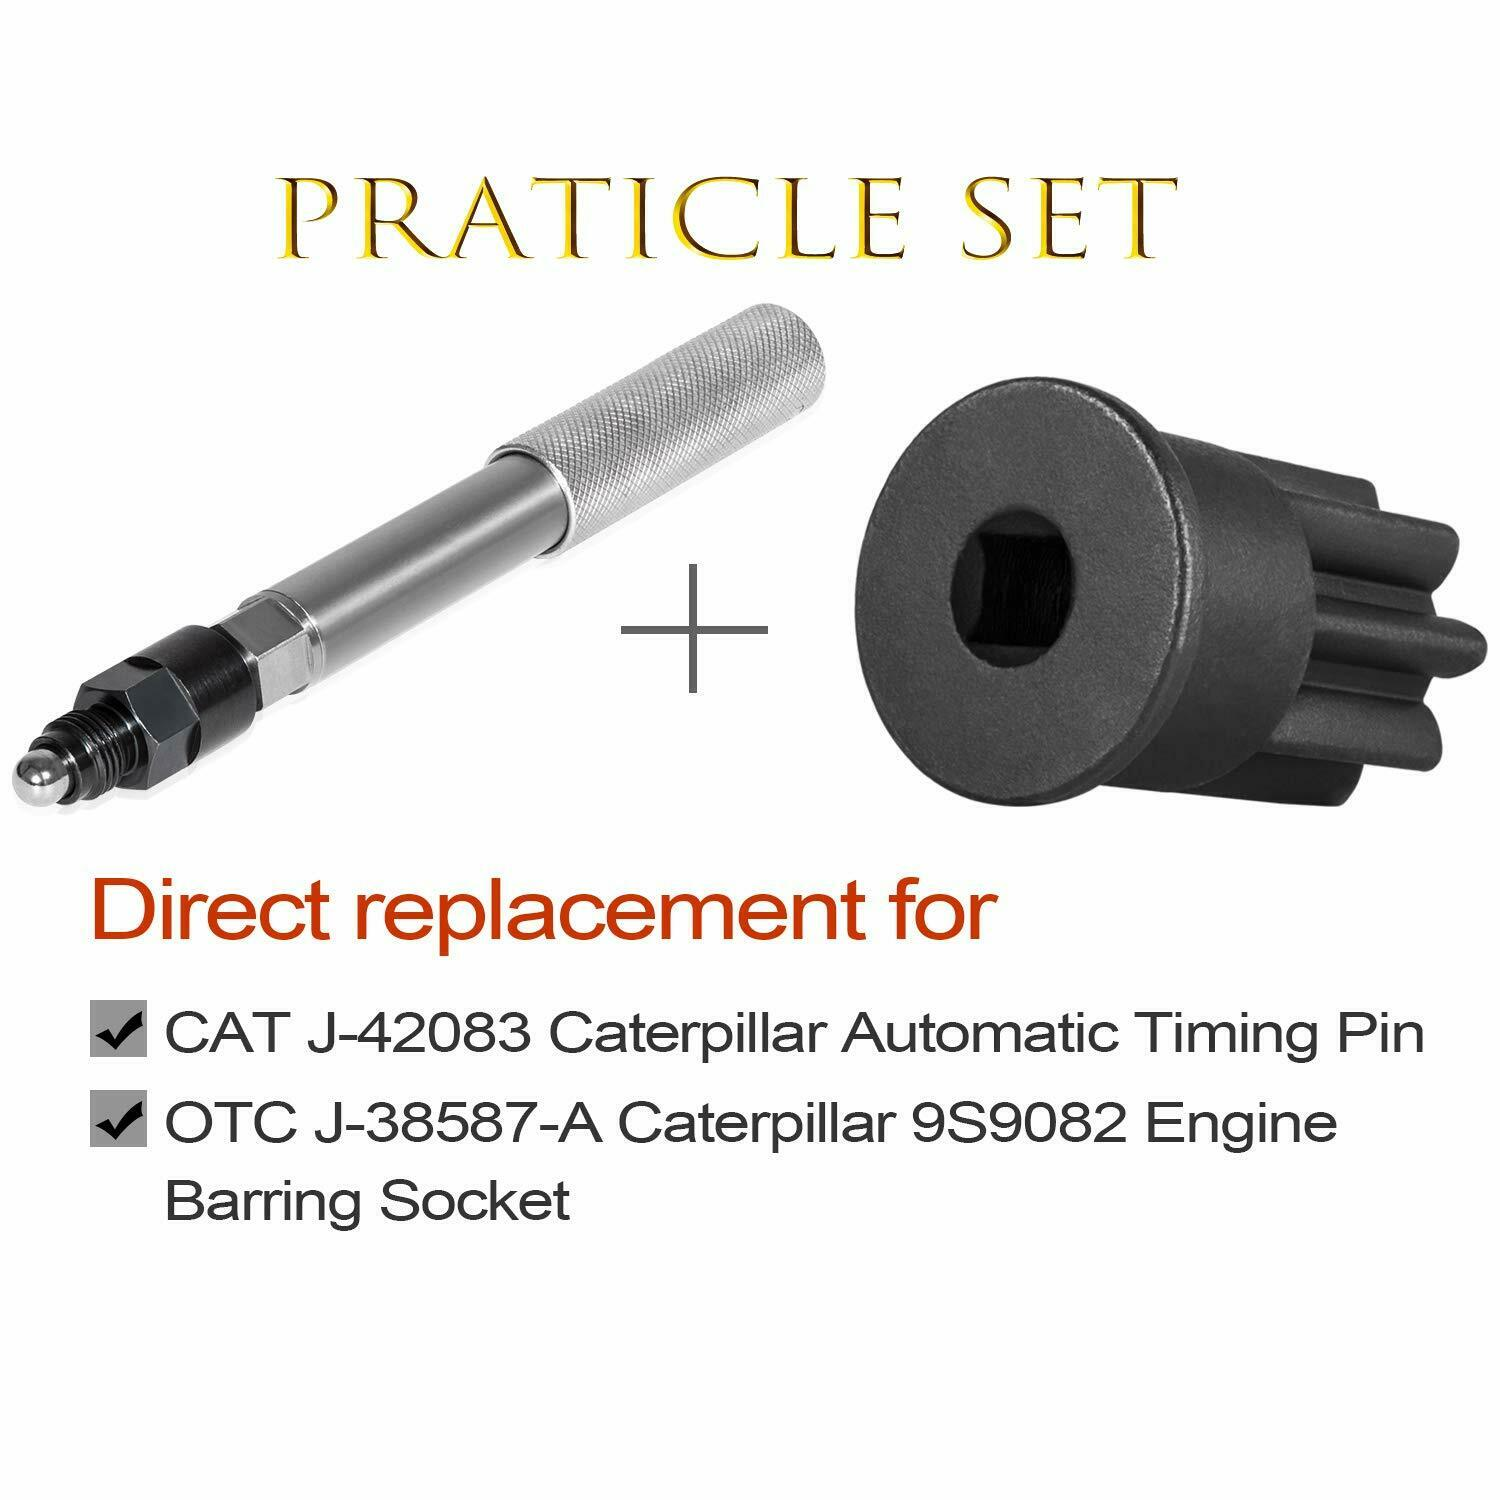 Sporthfish Automatic Timing Pin with Adapter Replace J-42083 and Engine Barring Socket Replace J-38587-A for Caterpillar 3200 3400 3500 Series CAT Engines C13 C15 C-16 3512C